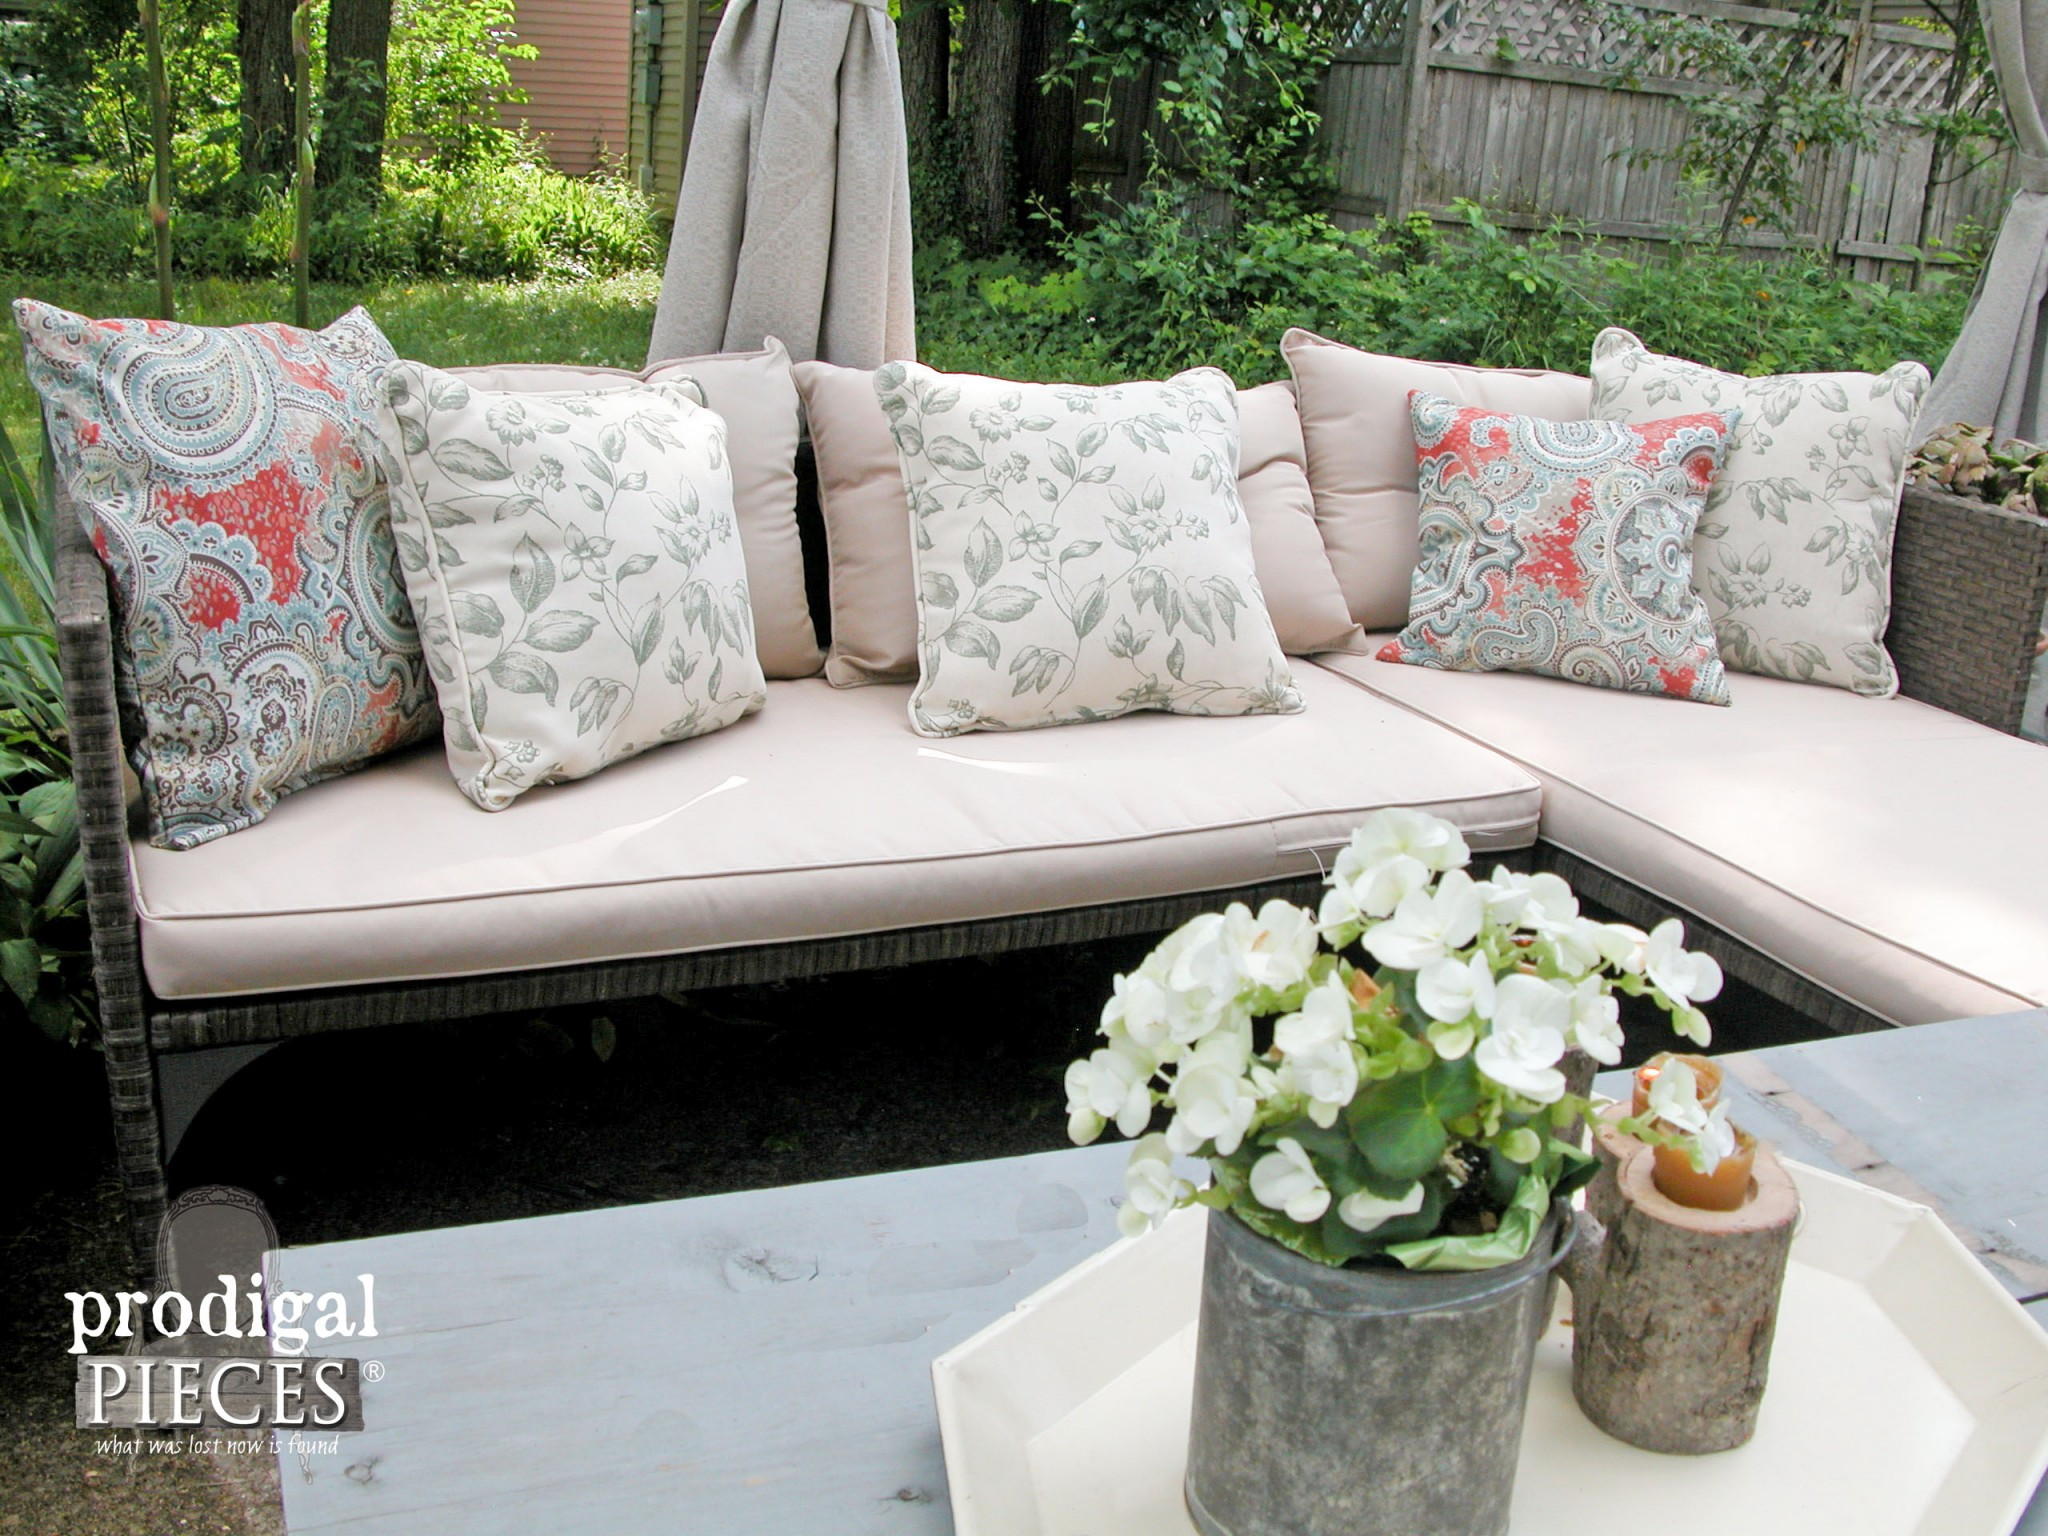 DIY Outdoor Pillows on Patio Sectional by Prodigal Pieces | www.prodigalpieces.com